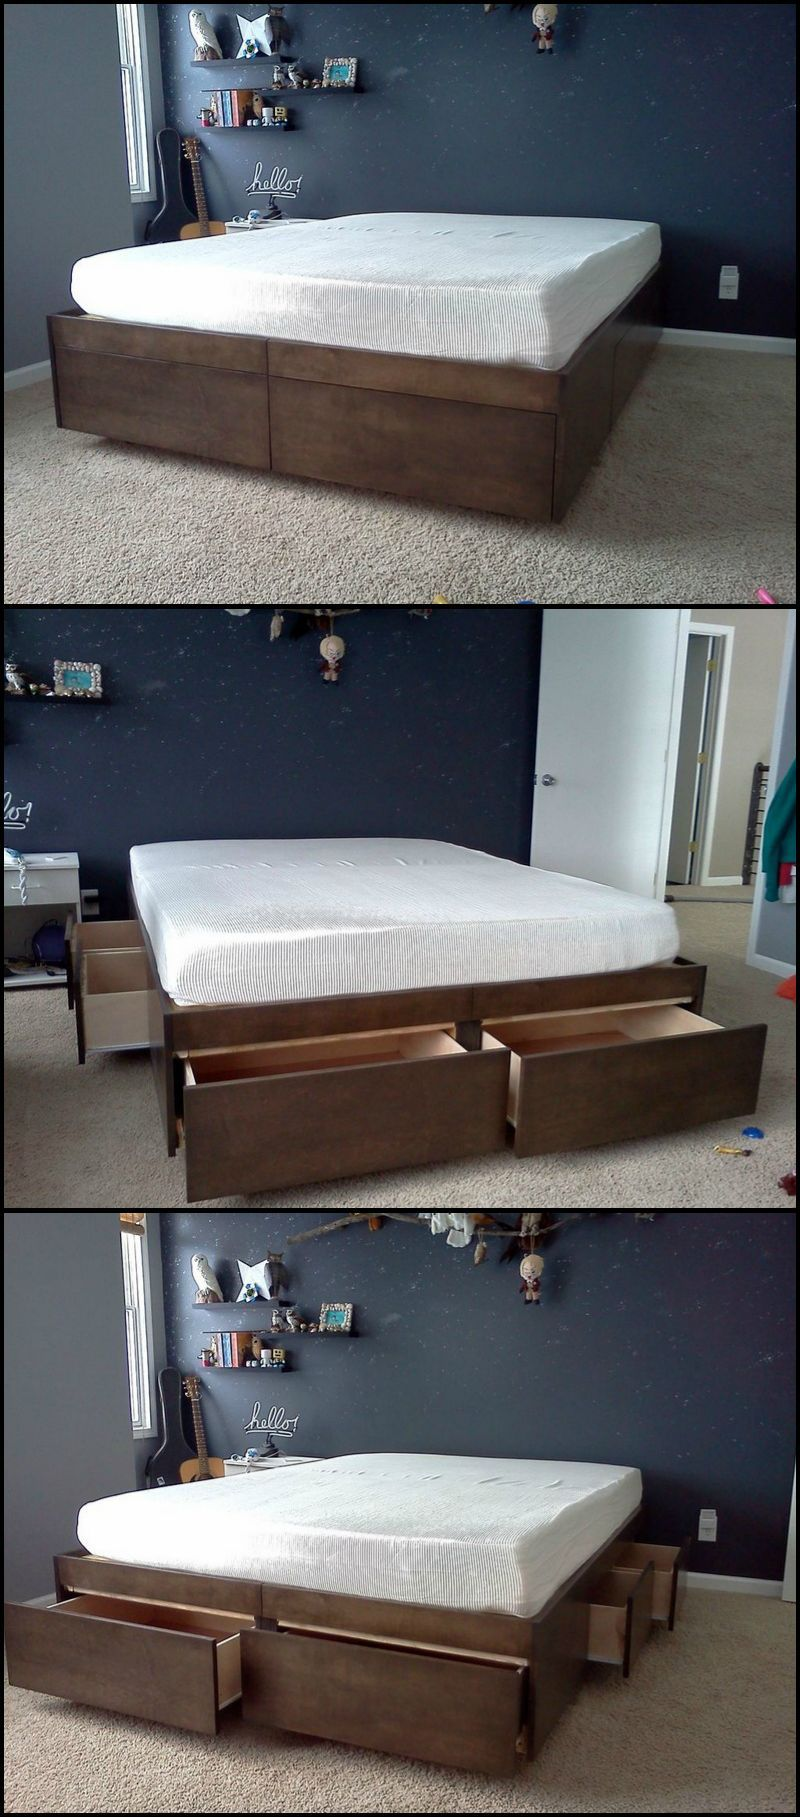 Do-It-Yourself Bed With Drawers | Bett, Schlafzimmer und Betten